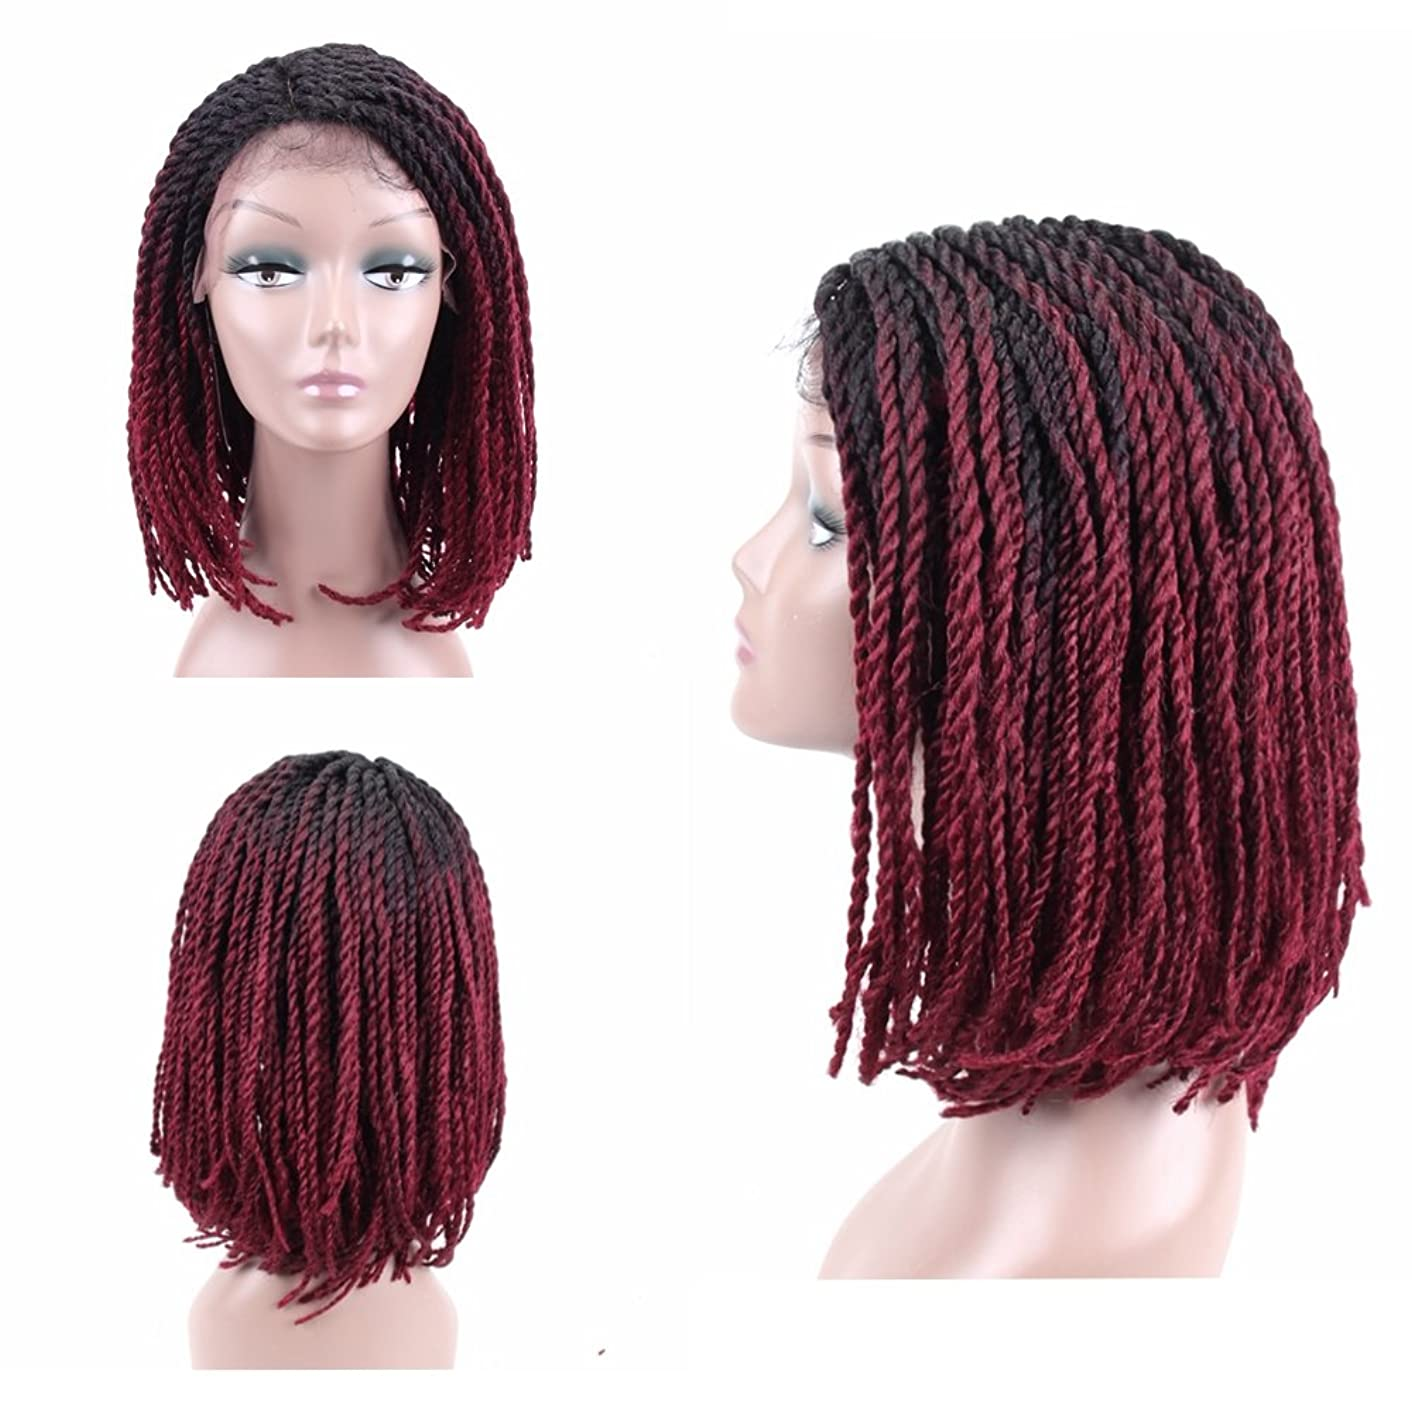 HAIR WAY Lace Front Braided Wigs Bob Style Black to Burgundy for Black Women Glueless Senegalese Twist Braided Lace Bob Wigs with Baby Hair for Daily Wear Half Hand Tied 16inches #1b/Burgundy